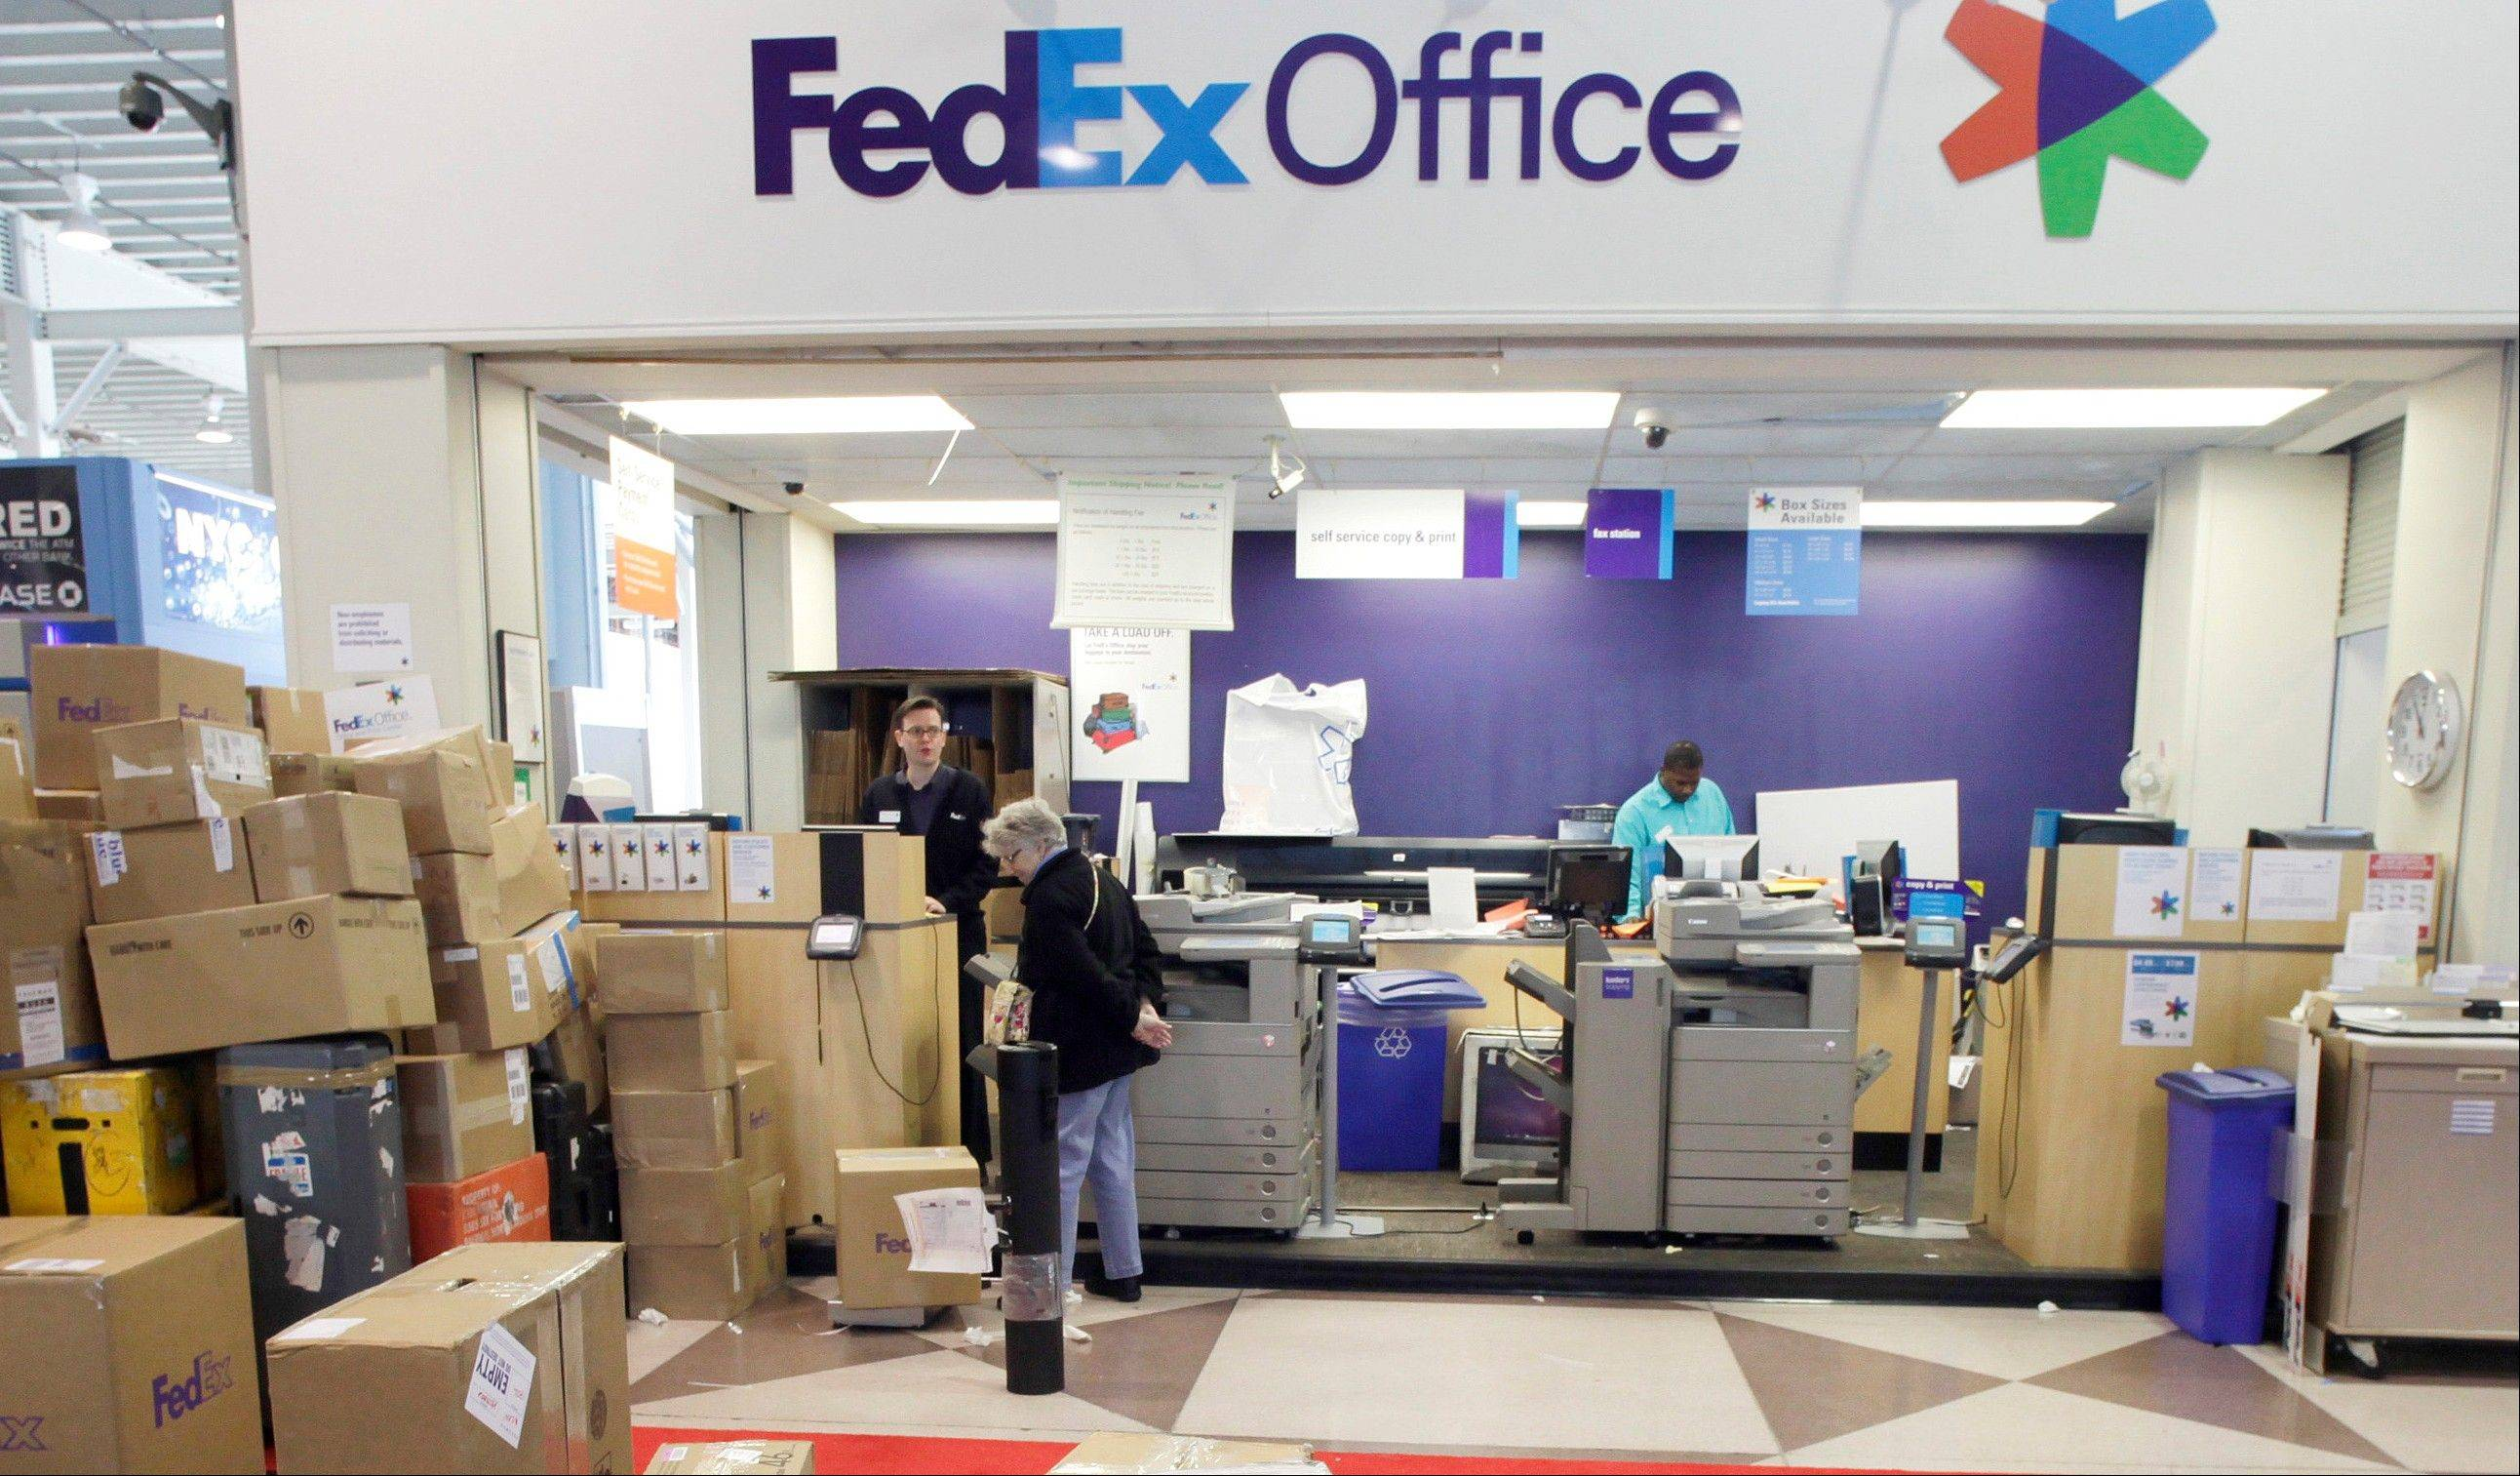 FedEx says the global economy is worsening and it's again cutting its forecast for the fiscal year ending in May.